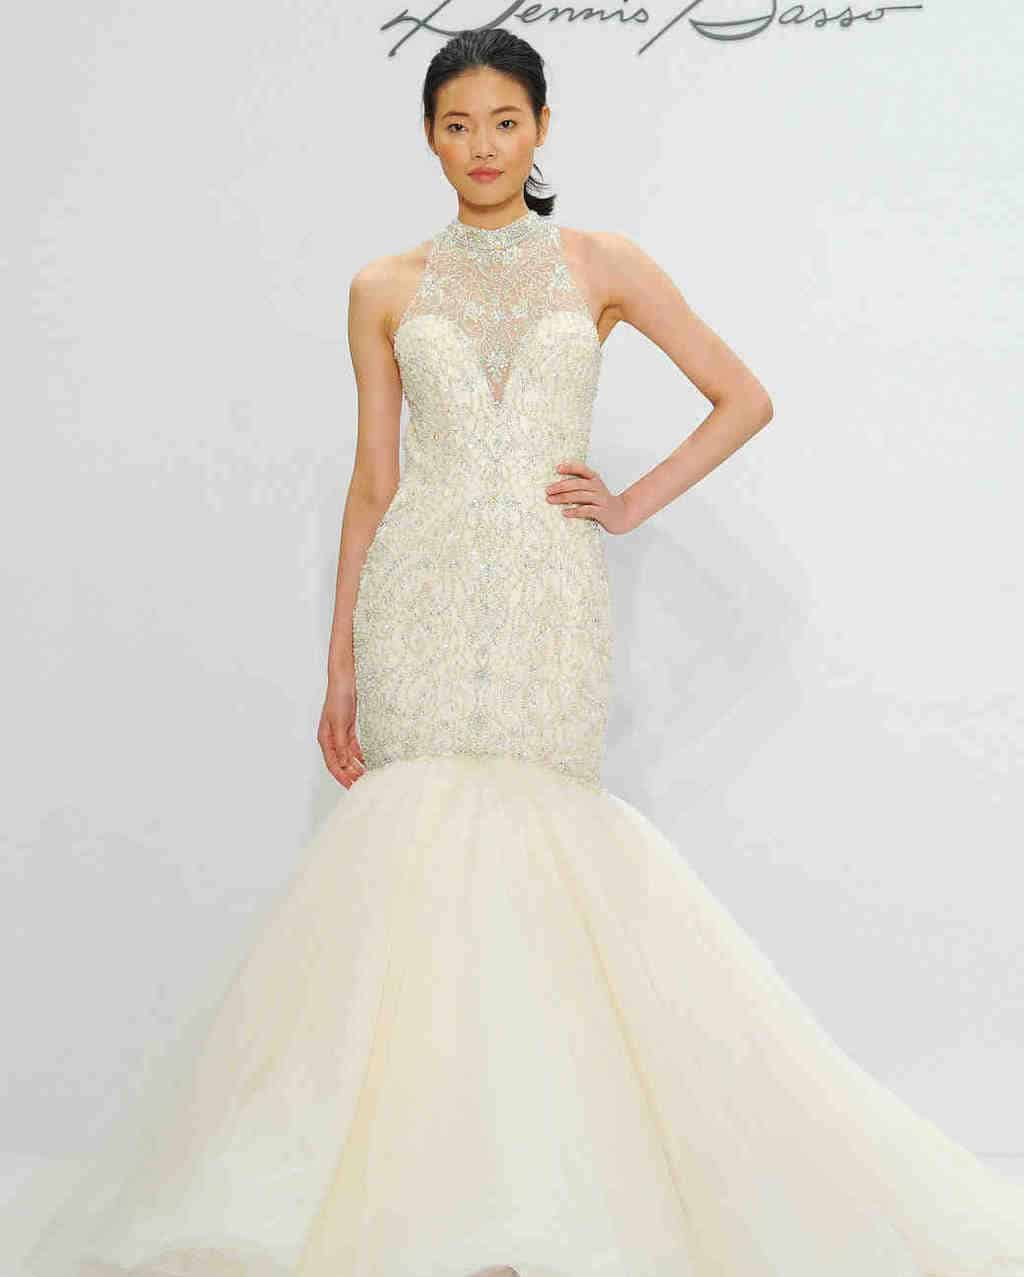 dennis-basso-wedding-dress-fall2017-6203351-017_vert